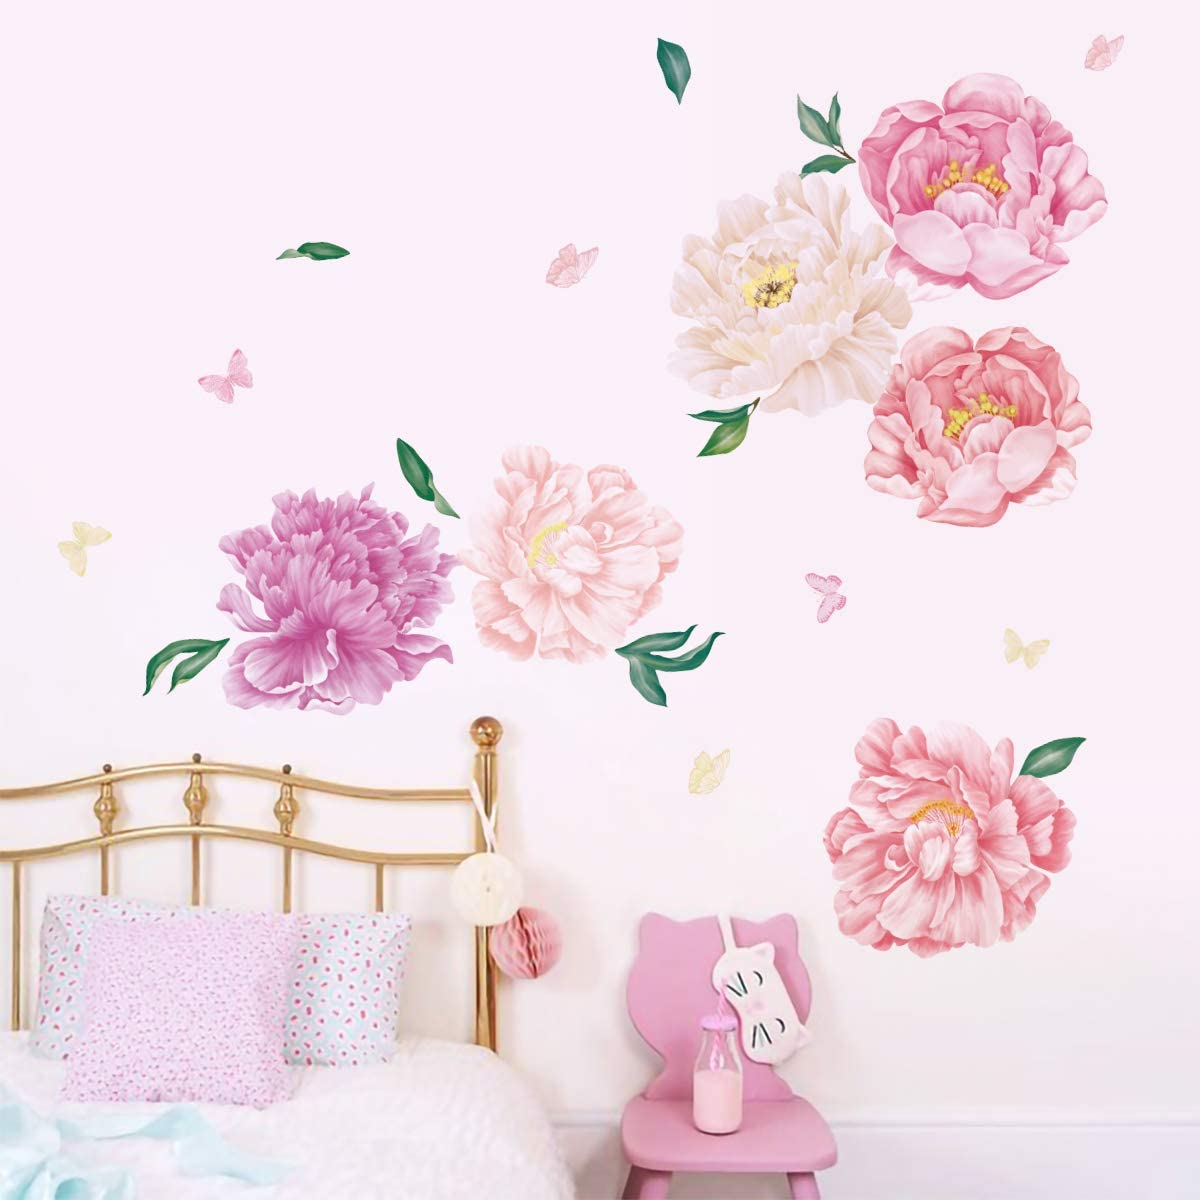 Runtoo Large Flower Wall Decals Peony Rose Floral Butterfly Wall Stickers Living Room Bedroom Baby Nursery Wall Art Décor